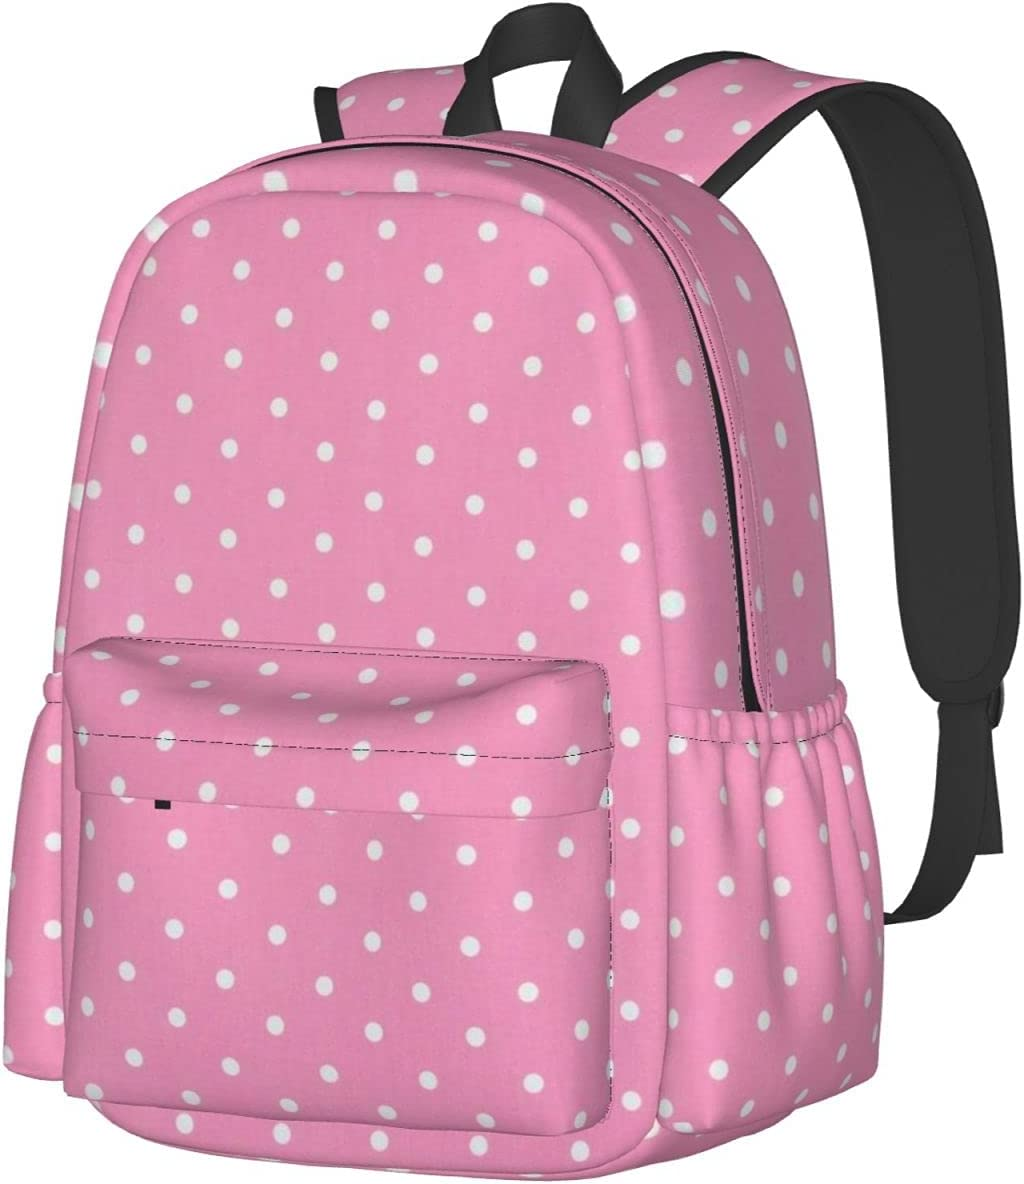 Pink White Dot Fashion Ranking TOP12 Backpacks New popularity Bags High-Capacity Schoo Laptop